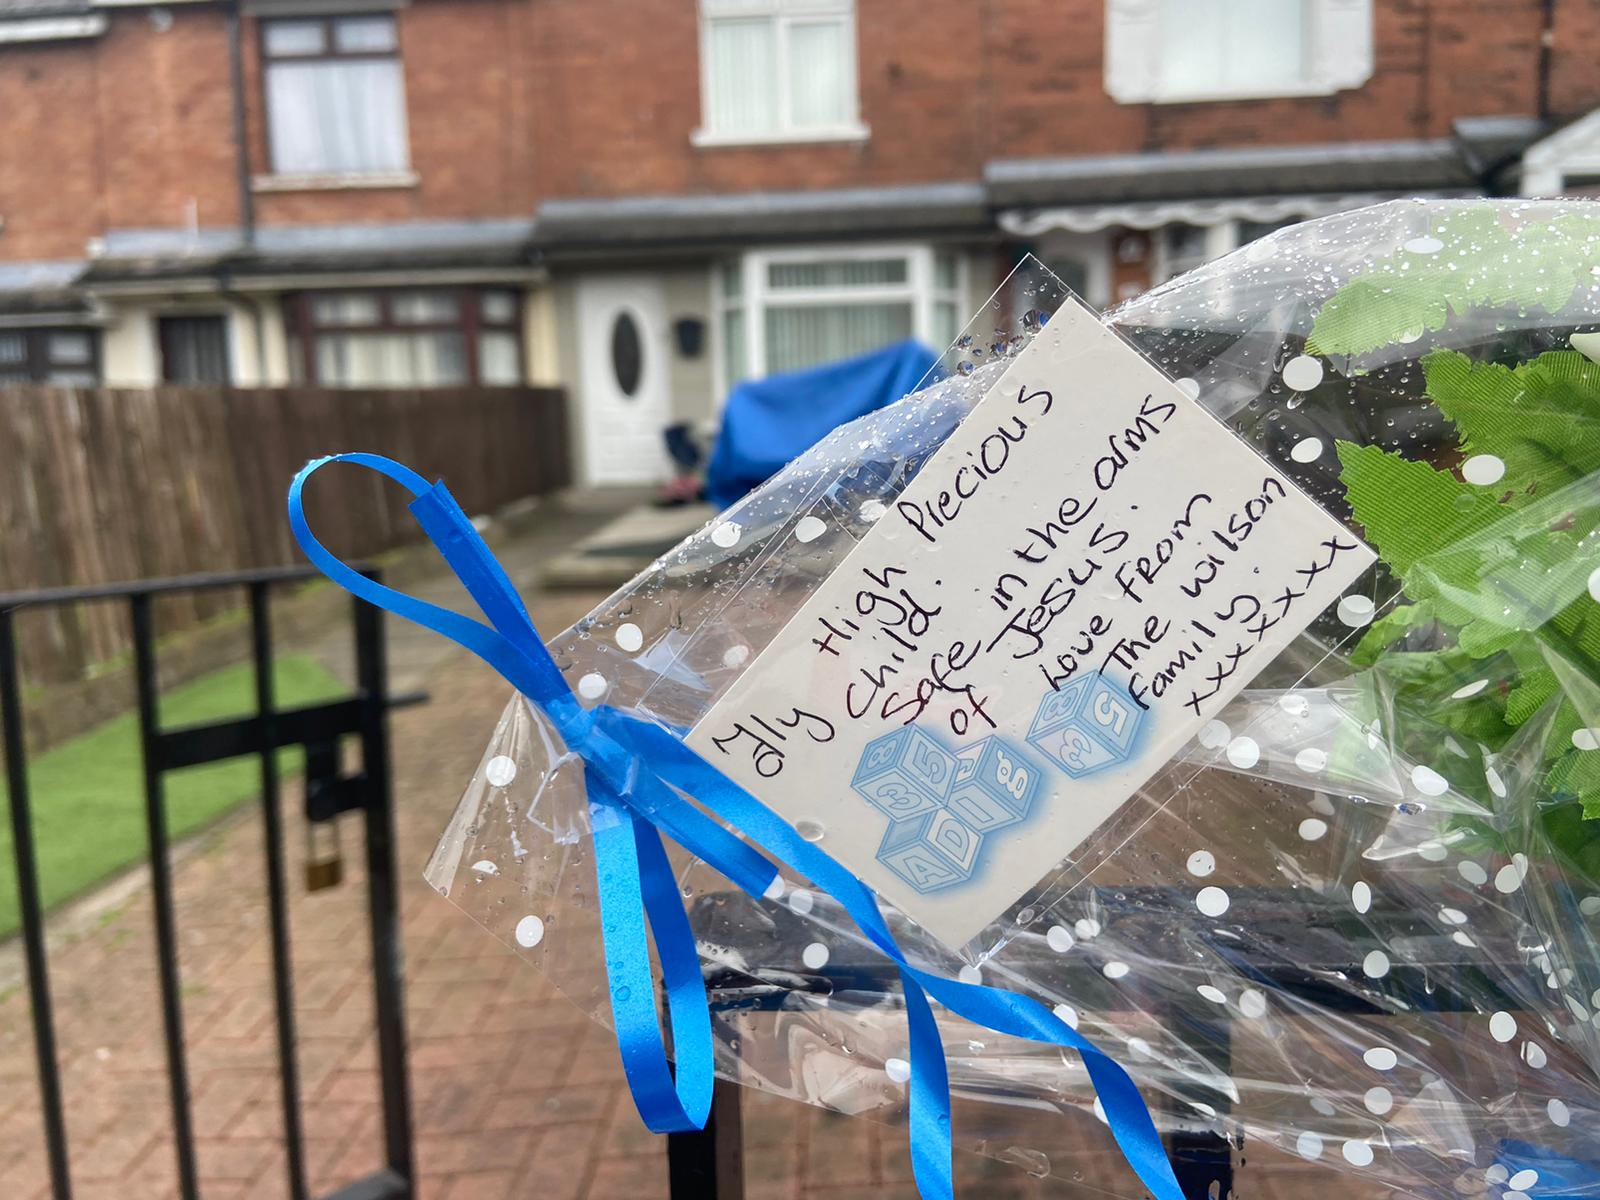 COMMUNITY SUPPORT: Tributes including flowers and teddy bears have been left at the house in Brompton Park in Ardoyne